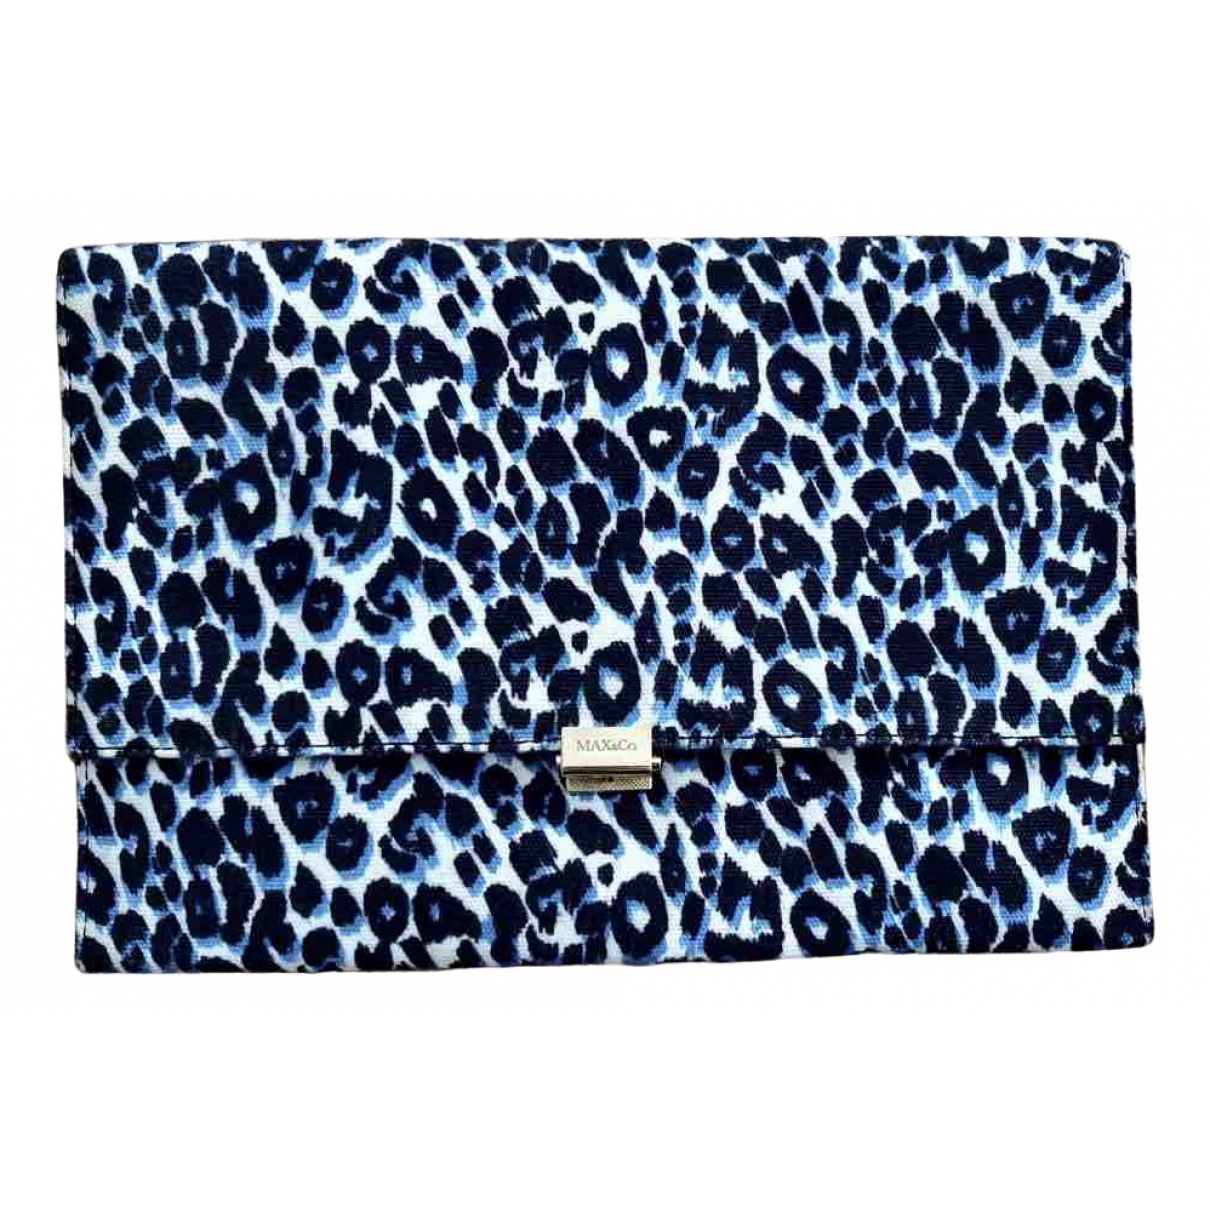 Max & Co N Cotton Clutch bag for Women N